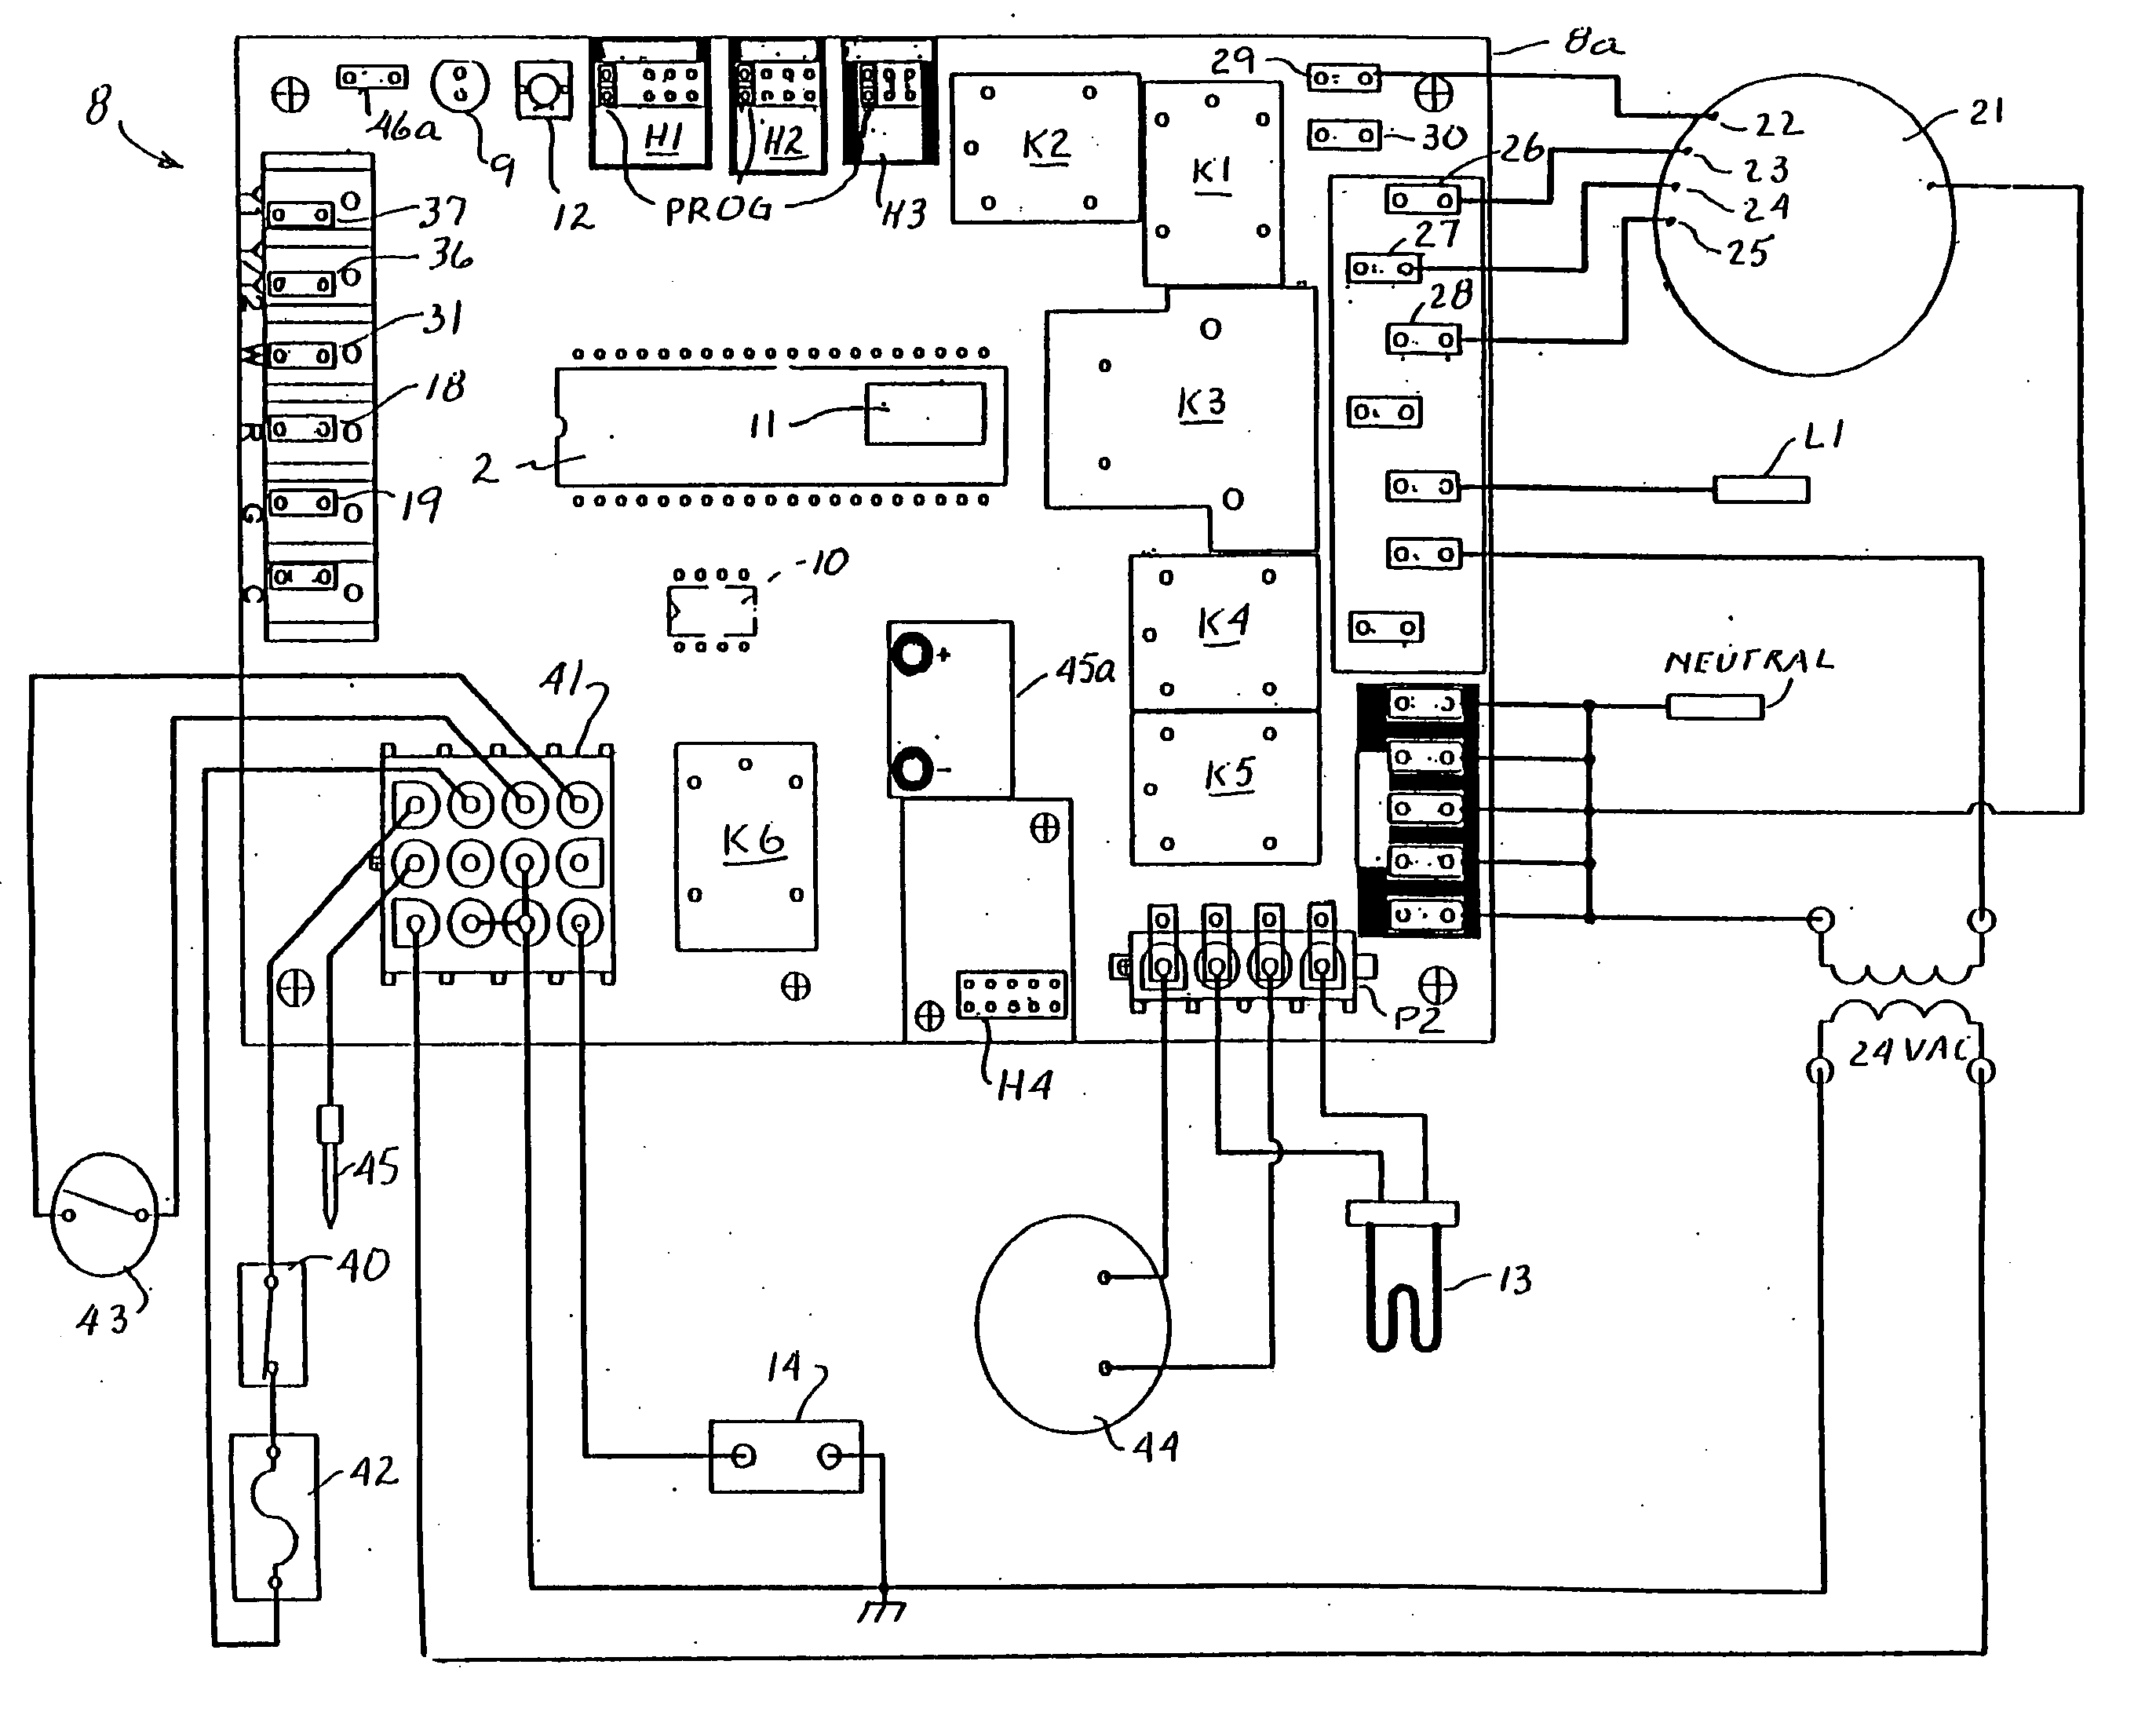 small resolution of unique old gas furnace wiring diagram diagram diagramsample diagramtemplate wiringdiagram diagramchart